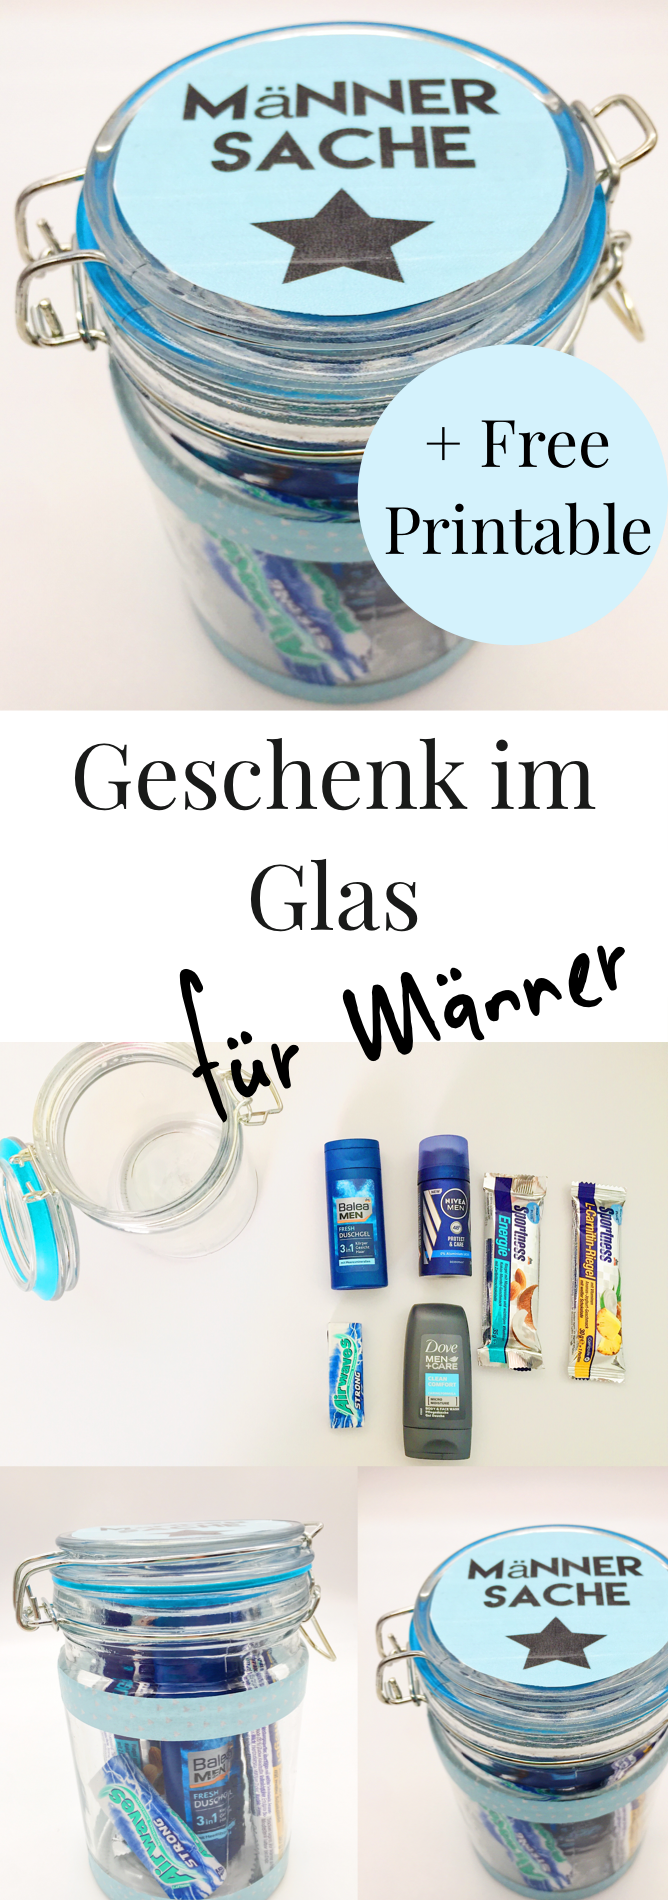 diy geschenke im glas selber machen happy dings diy tipps pinterest diys diy xmas gifts. Black Bedroom Furniture Sets. Home Design Ideas